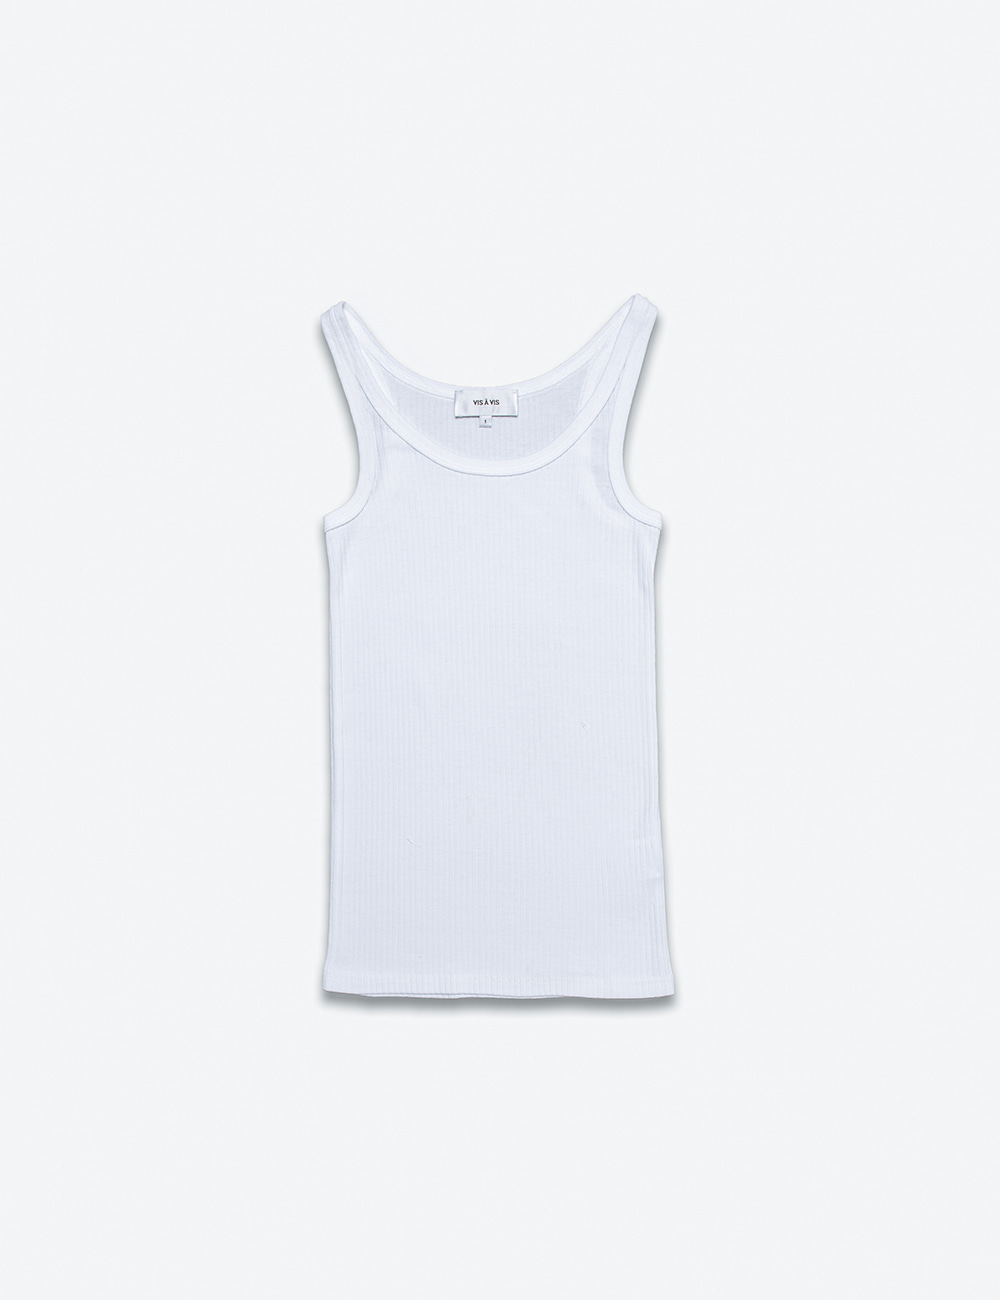 BROAD STITCH RIB TANK TOP